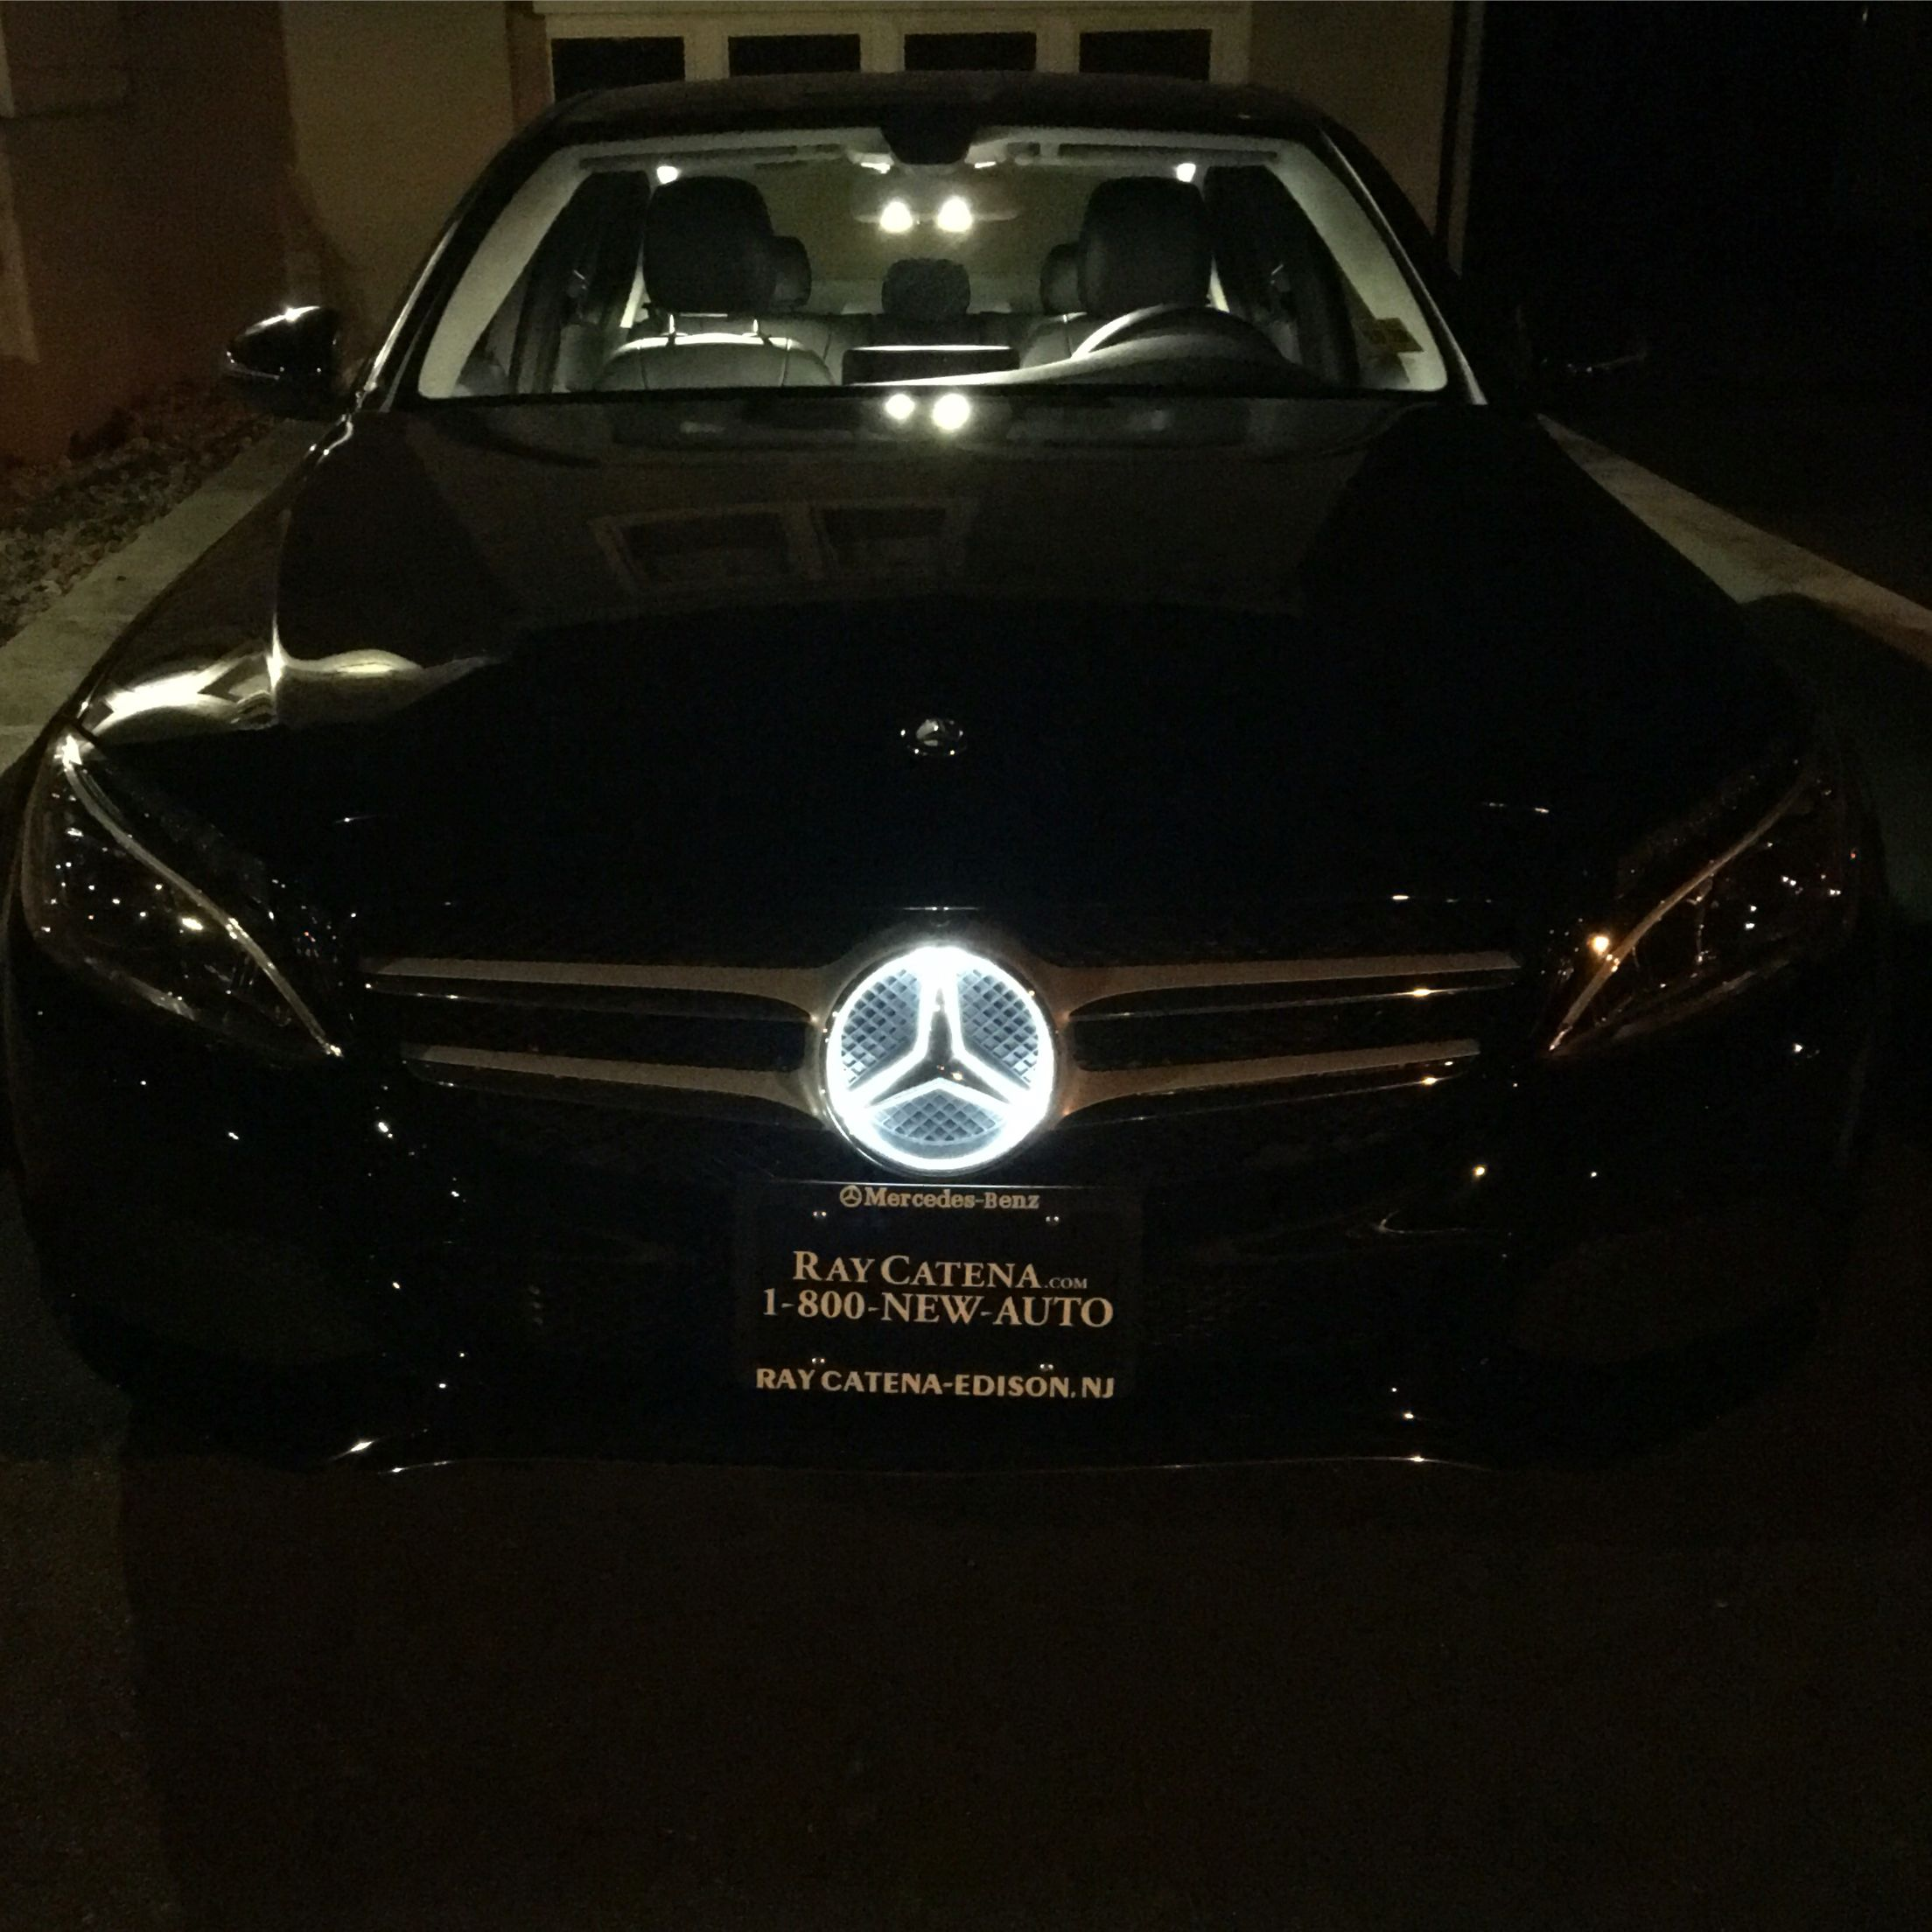 illuminated star option for the new mercedes-benz cars. c300